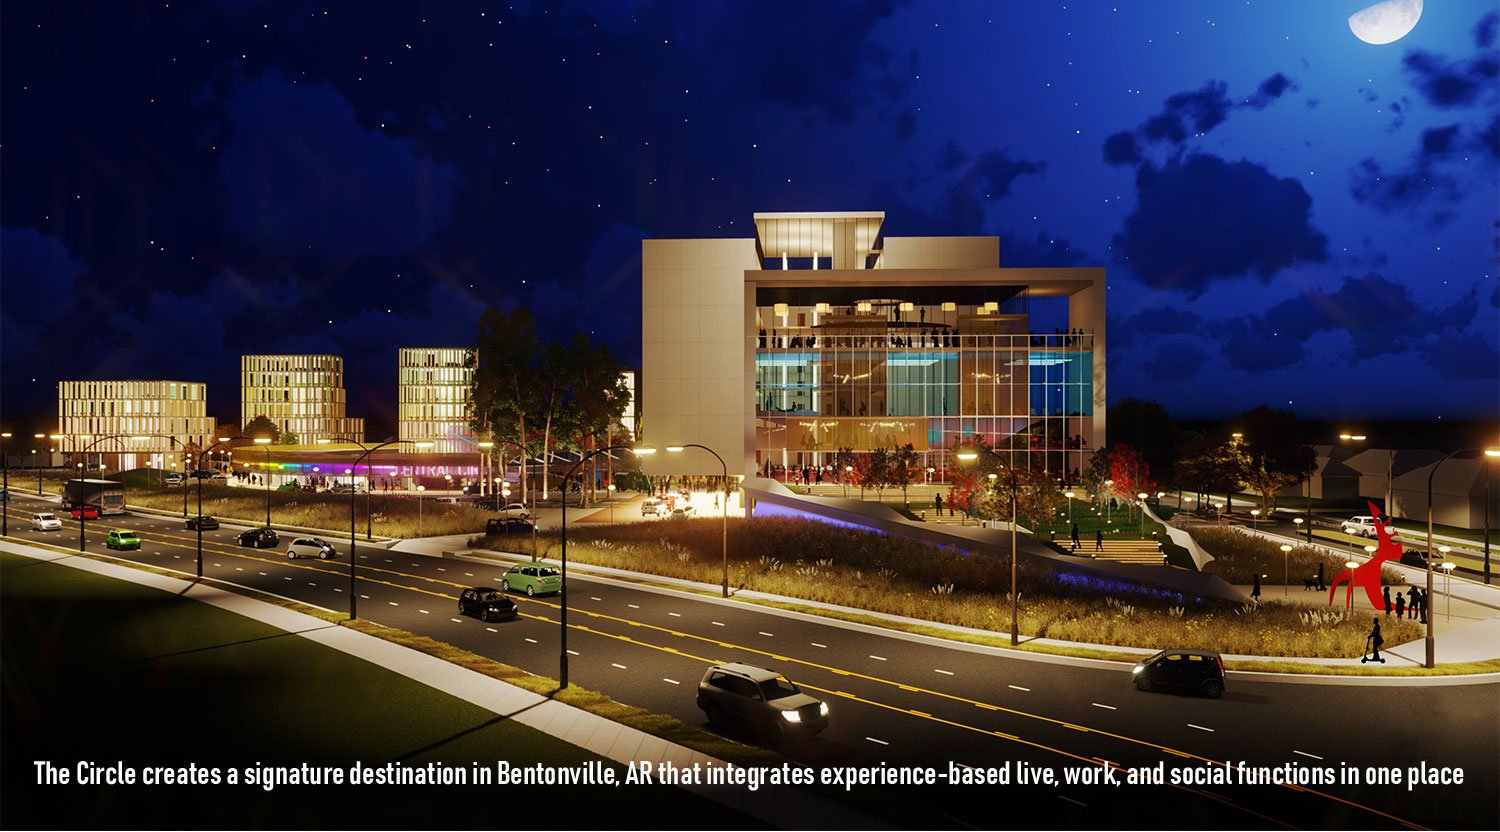 The Circle creates an experience-based mixed-use destination in a rapidly growing small town. University of Arkansas Community Design Center}